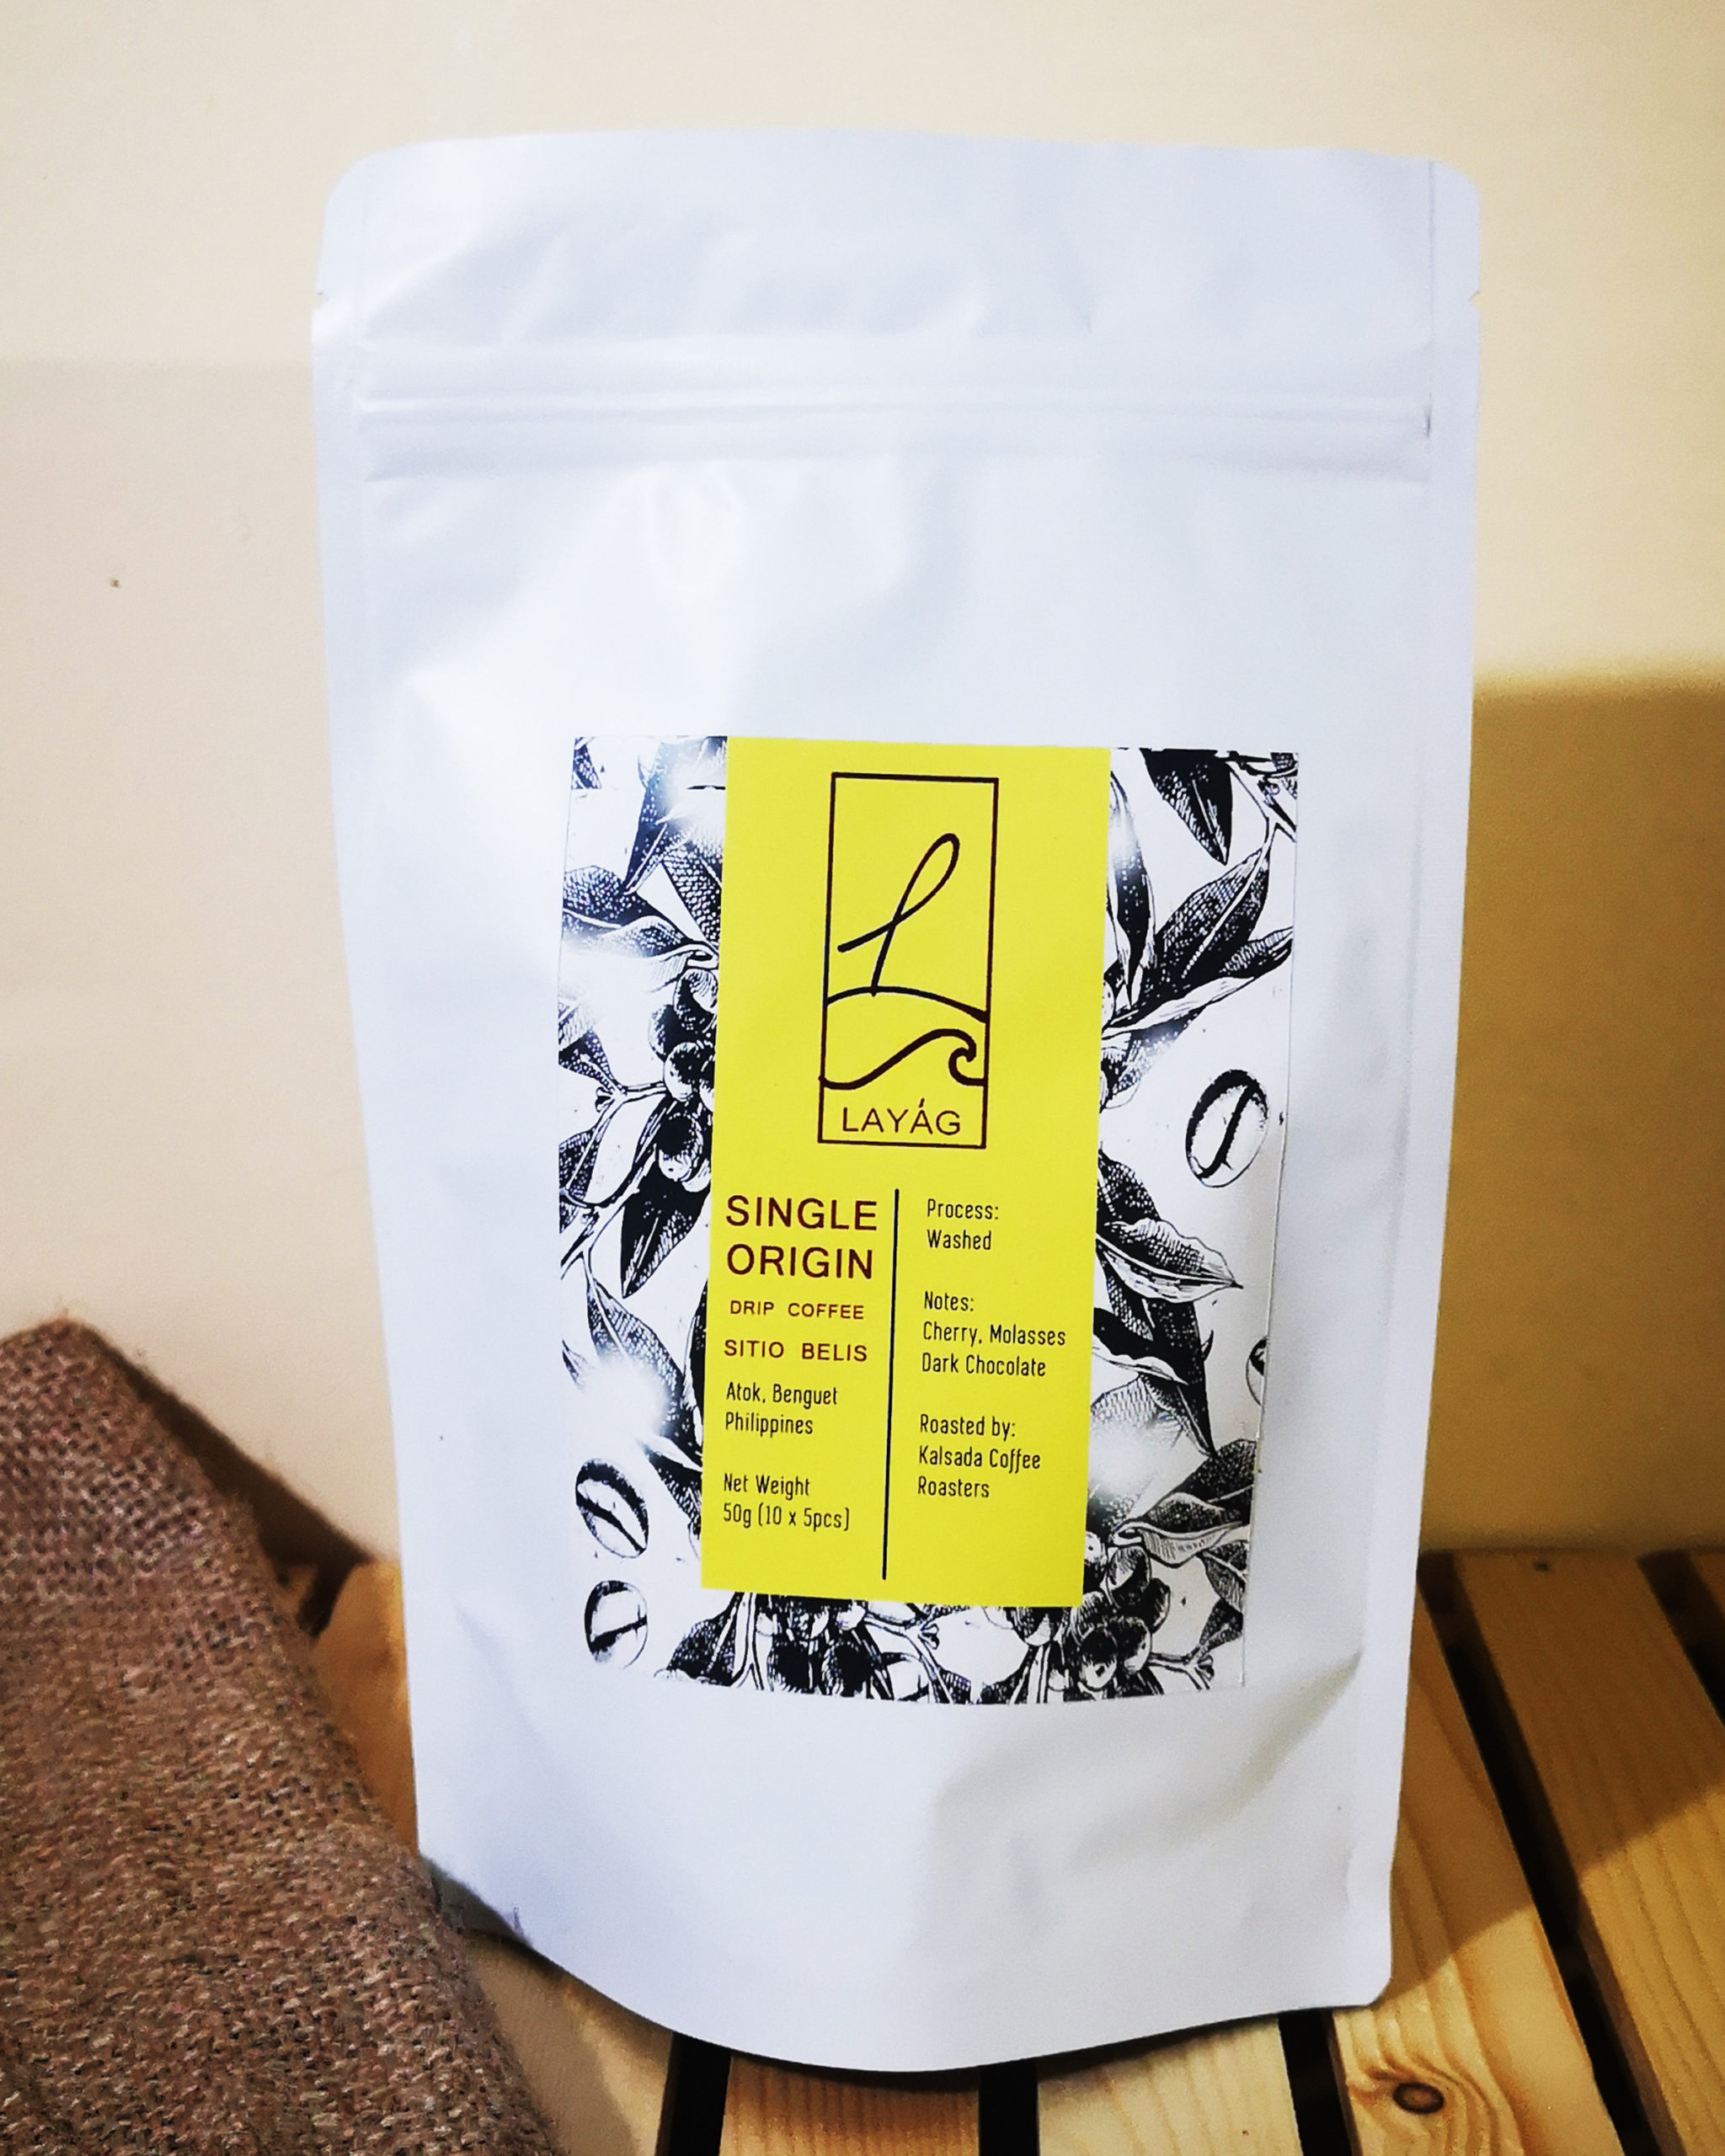 Layag single origin coffee